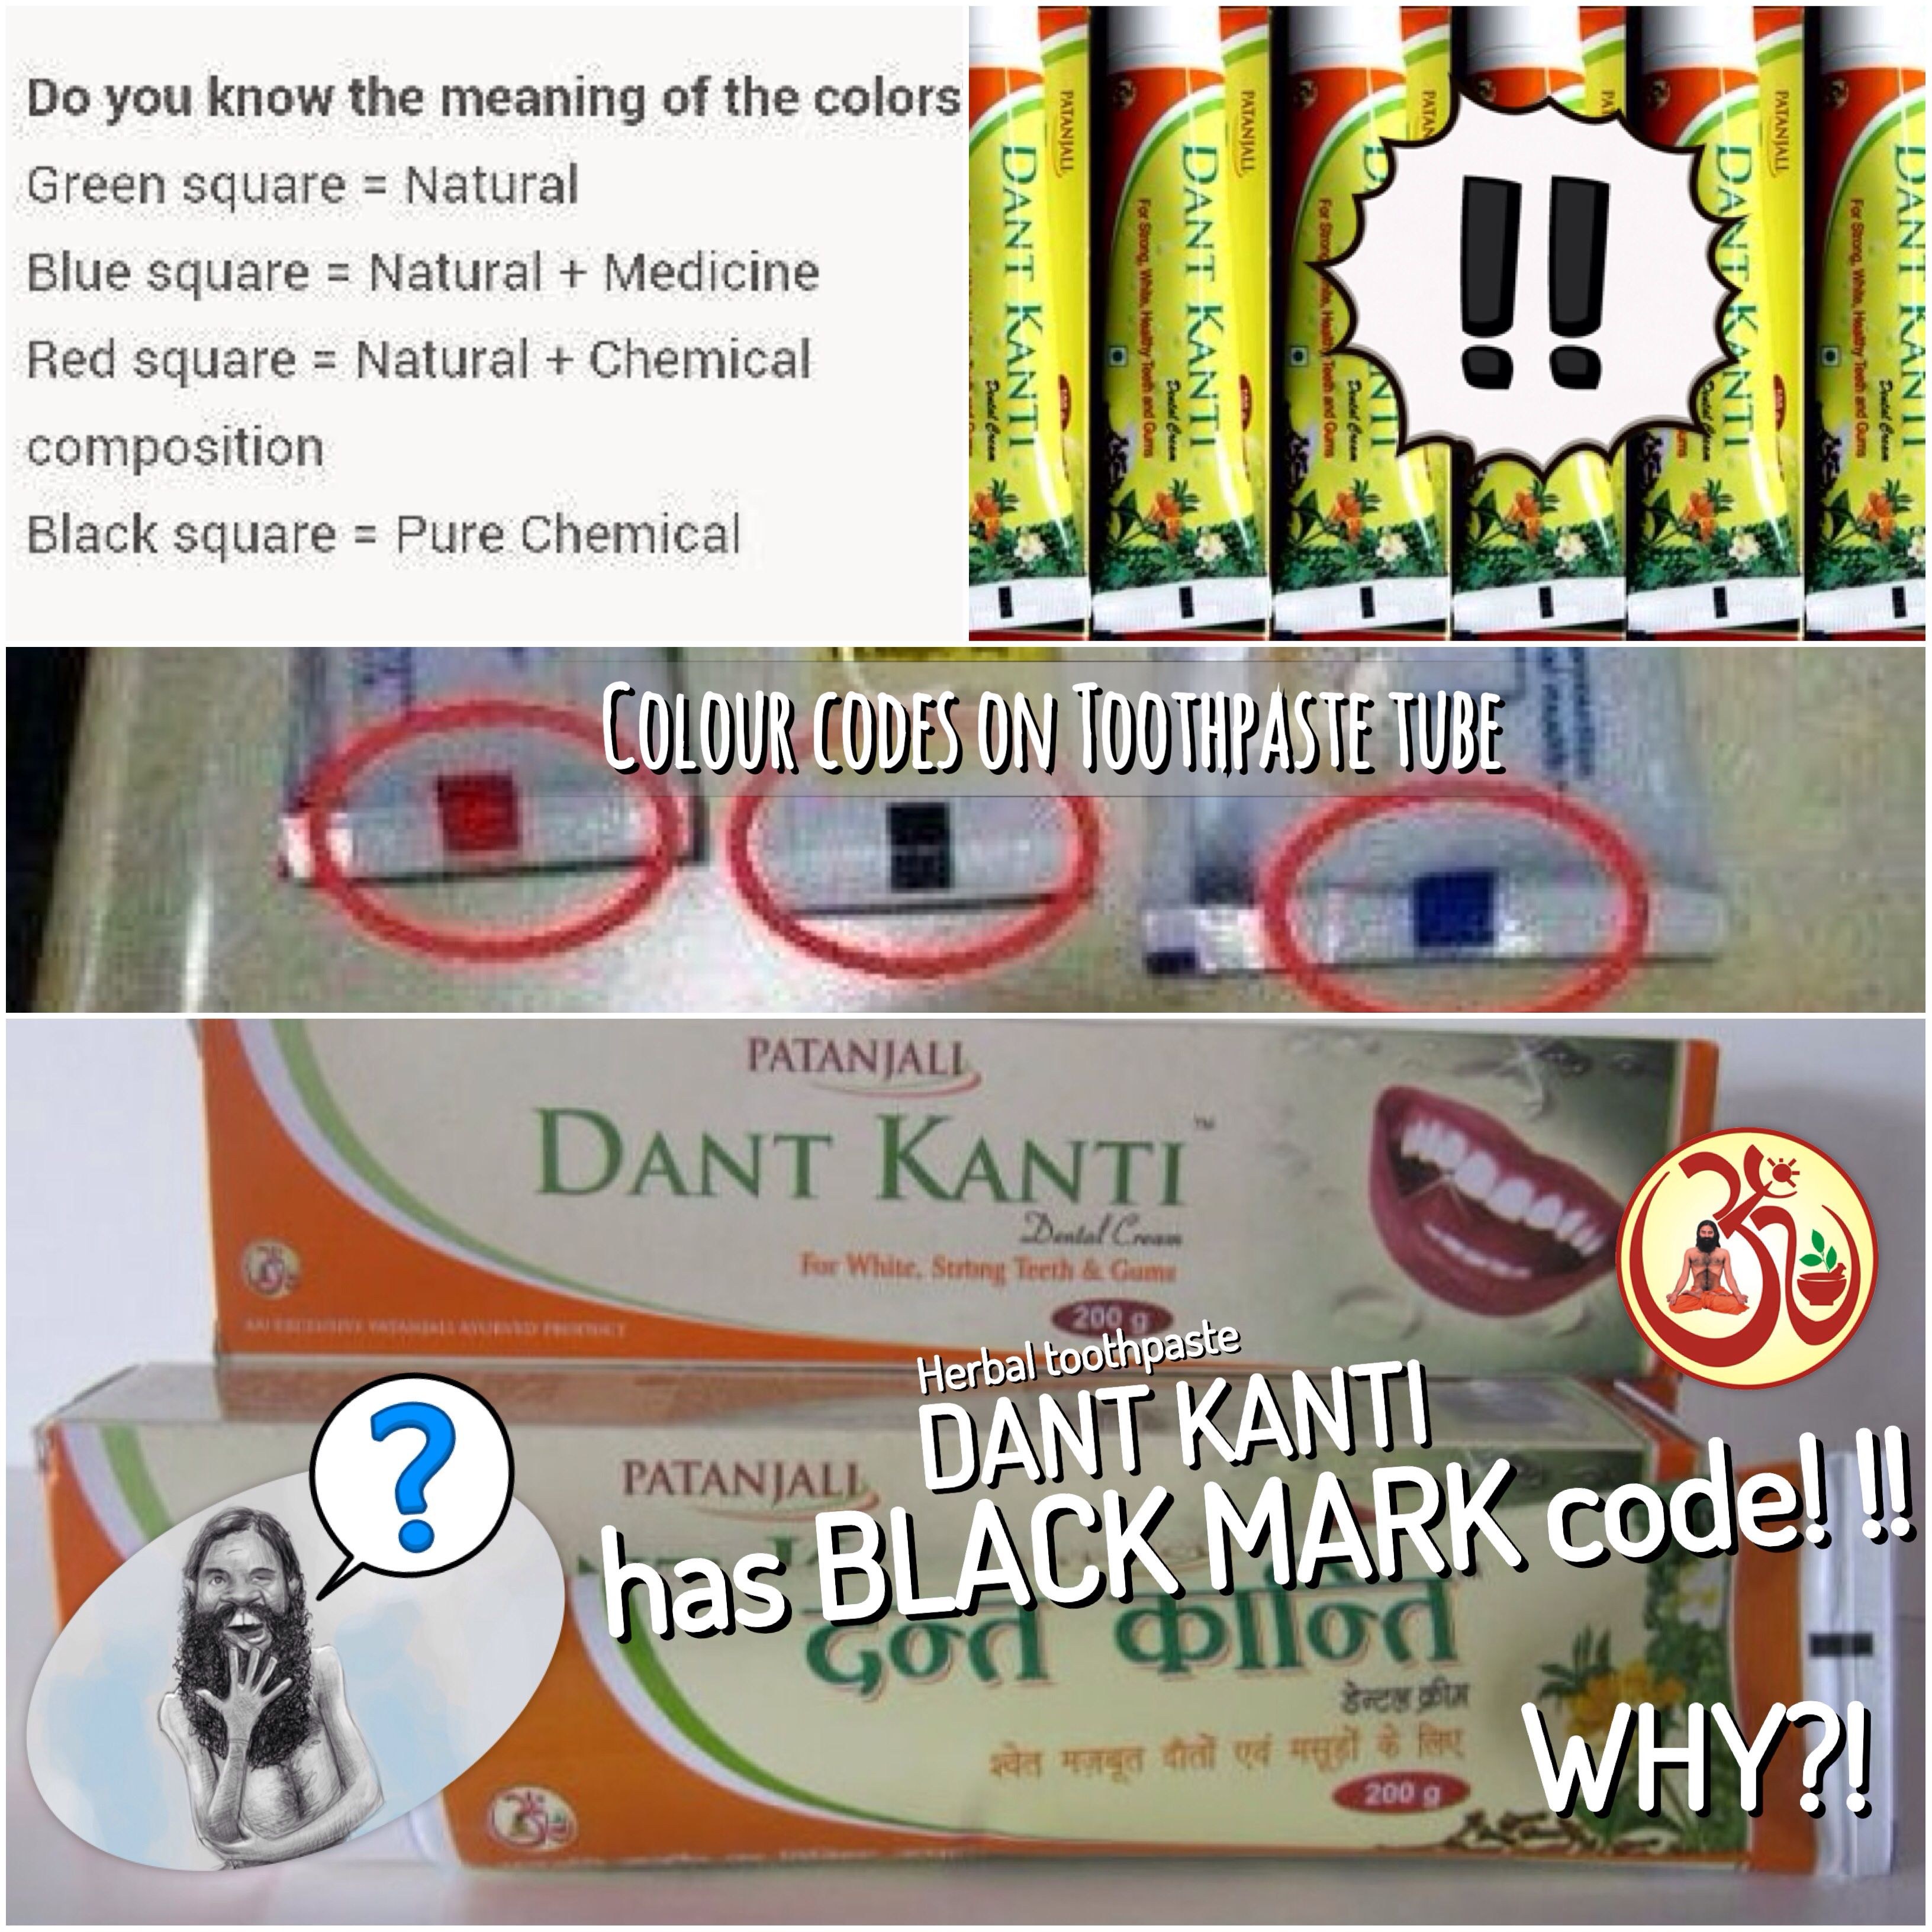 Buy herbal highs - High Anxiety By Seeing A Black Code Means Purely Chemical On Herbal